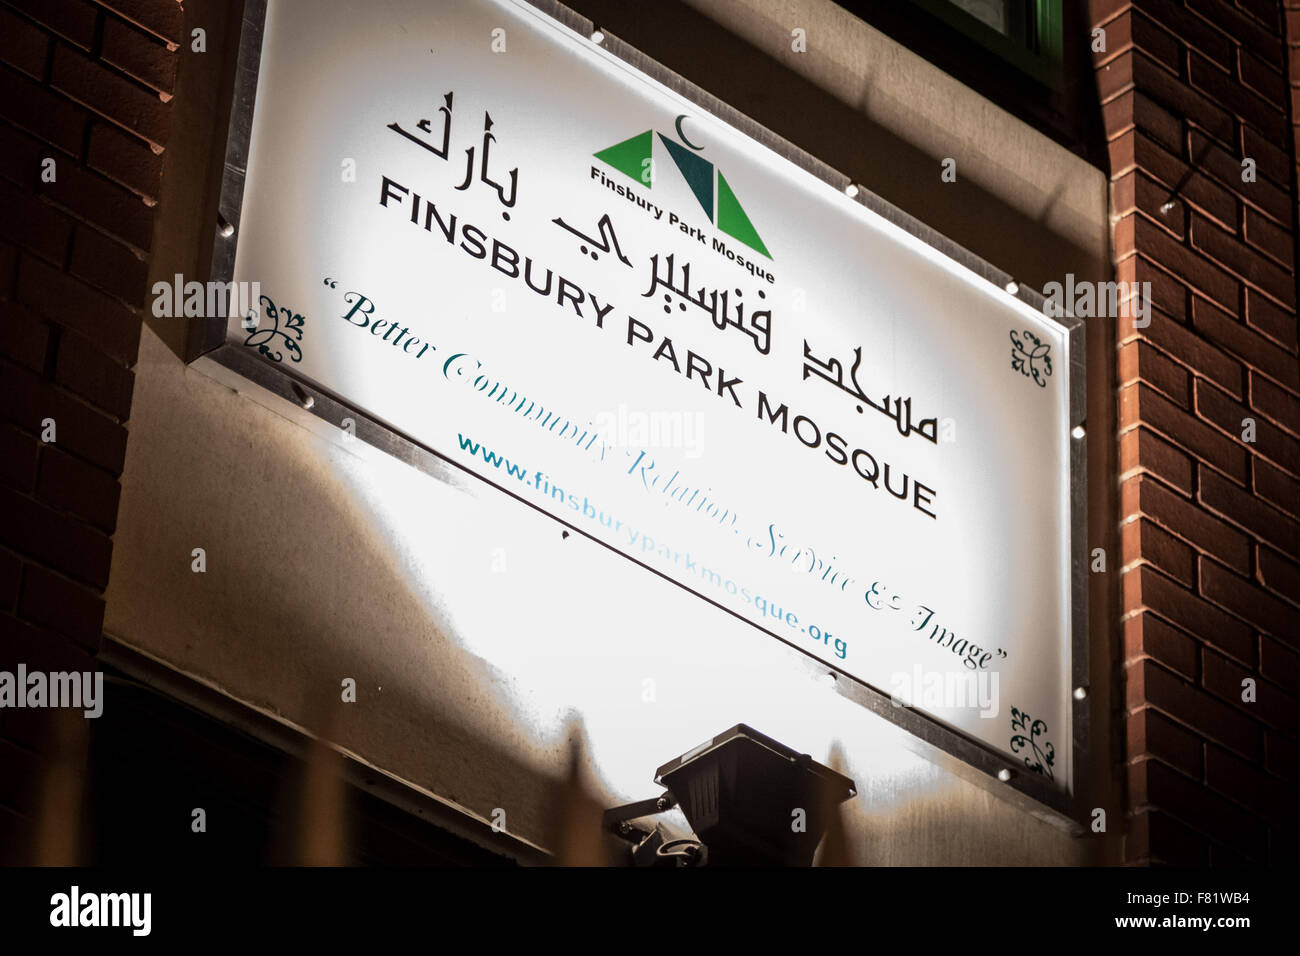 London, UK. 4th December, 2015. Anti-racist protest and rally outside Finsbury Park Mosque in North London against - Stock Image